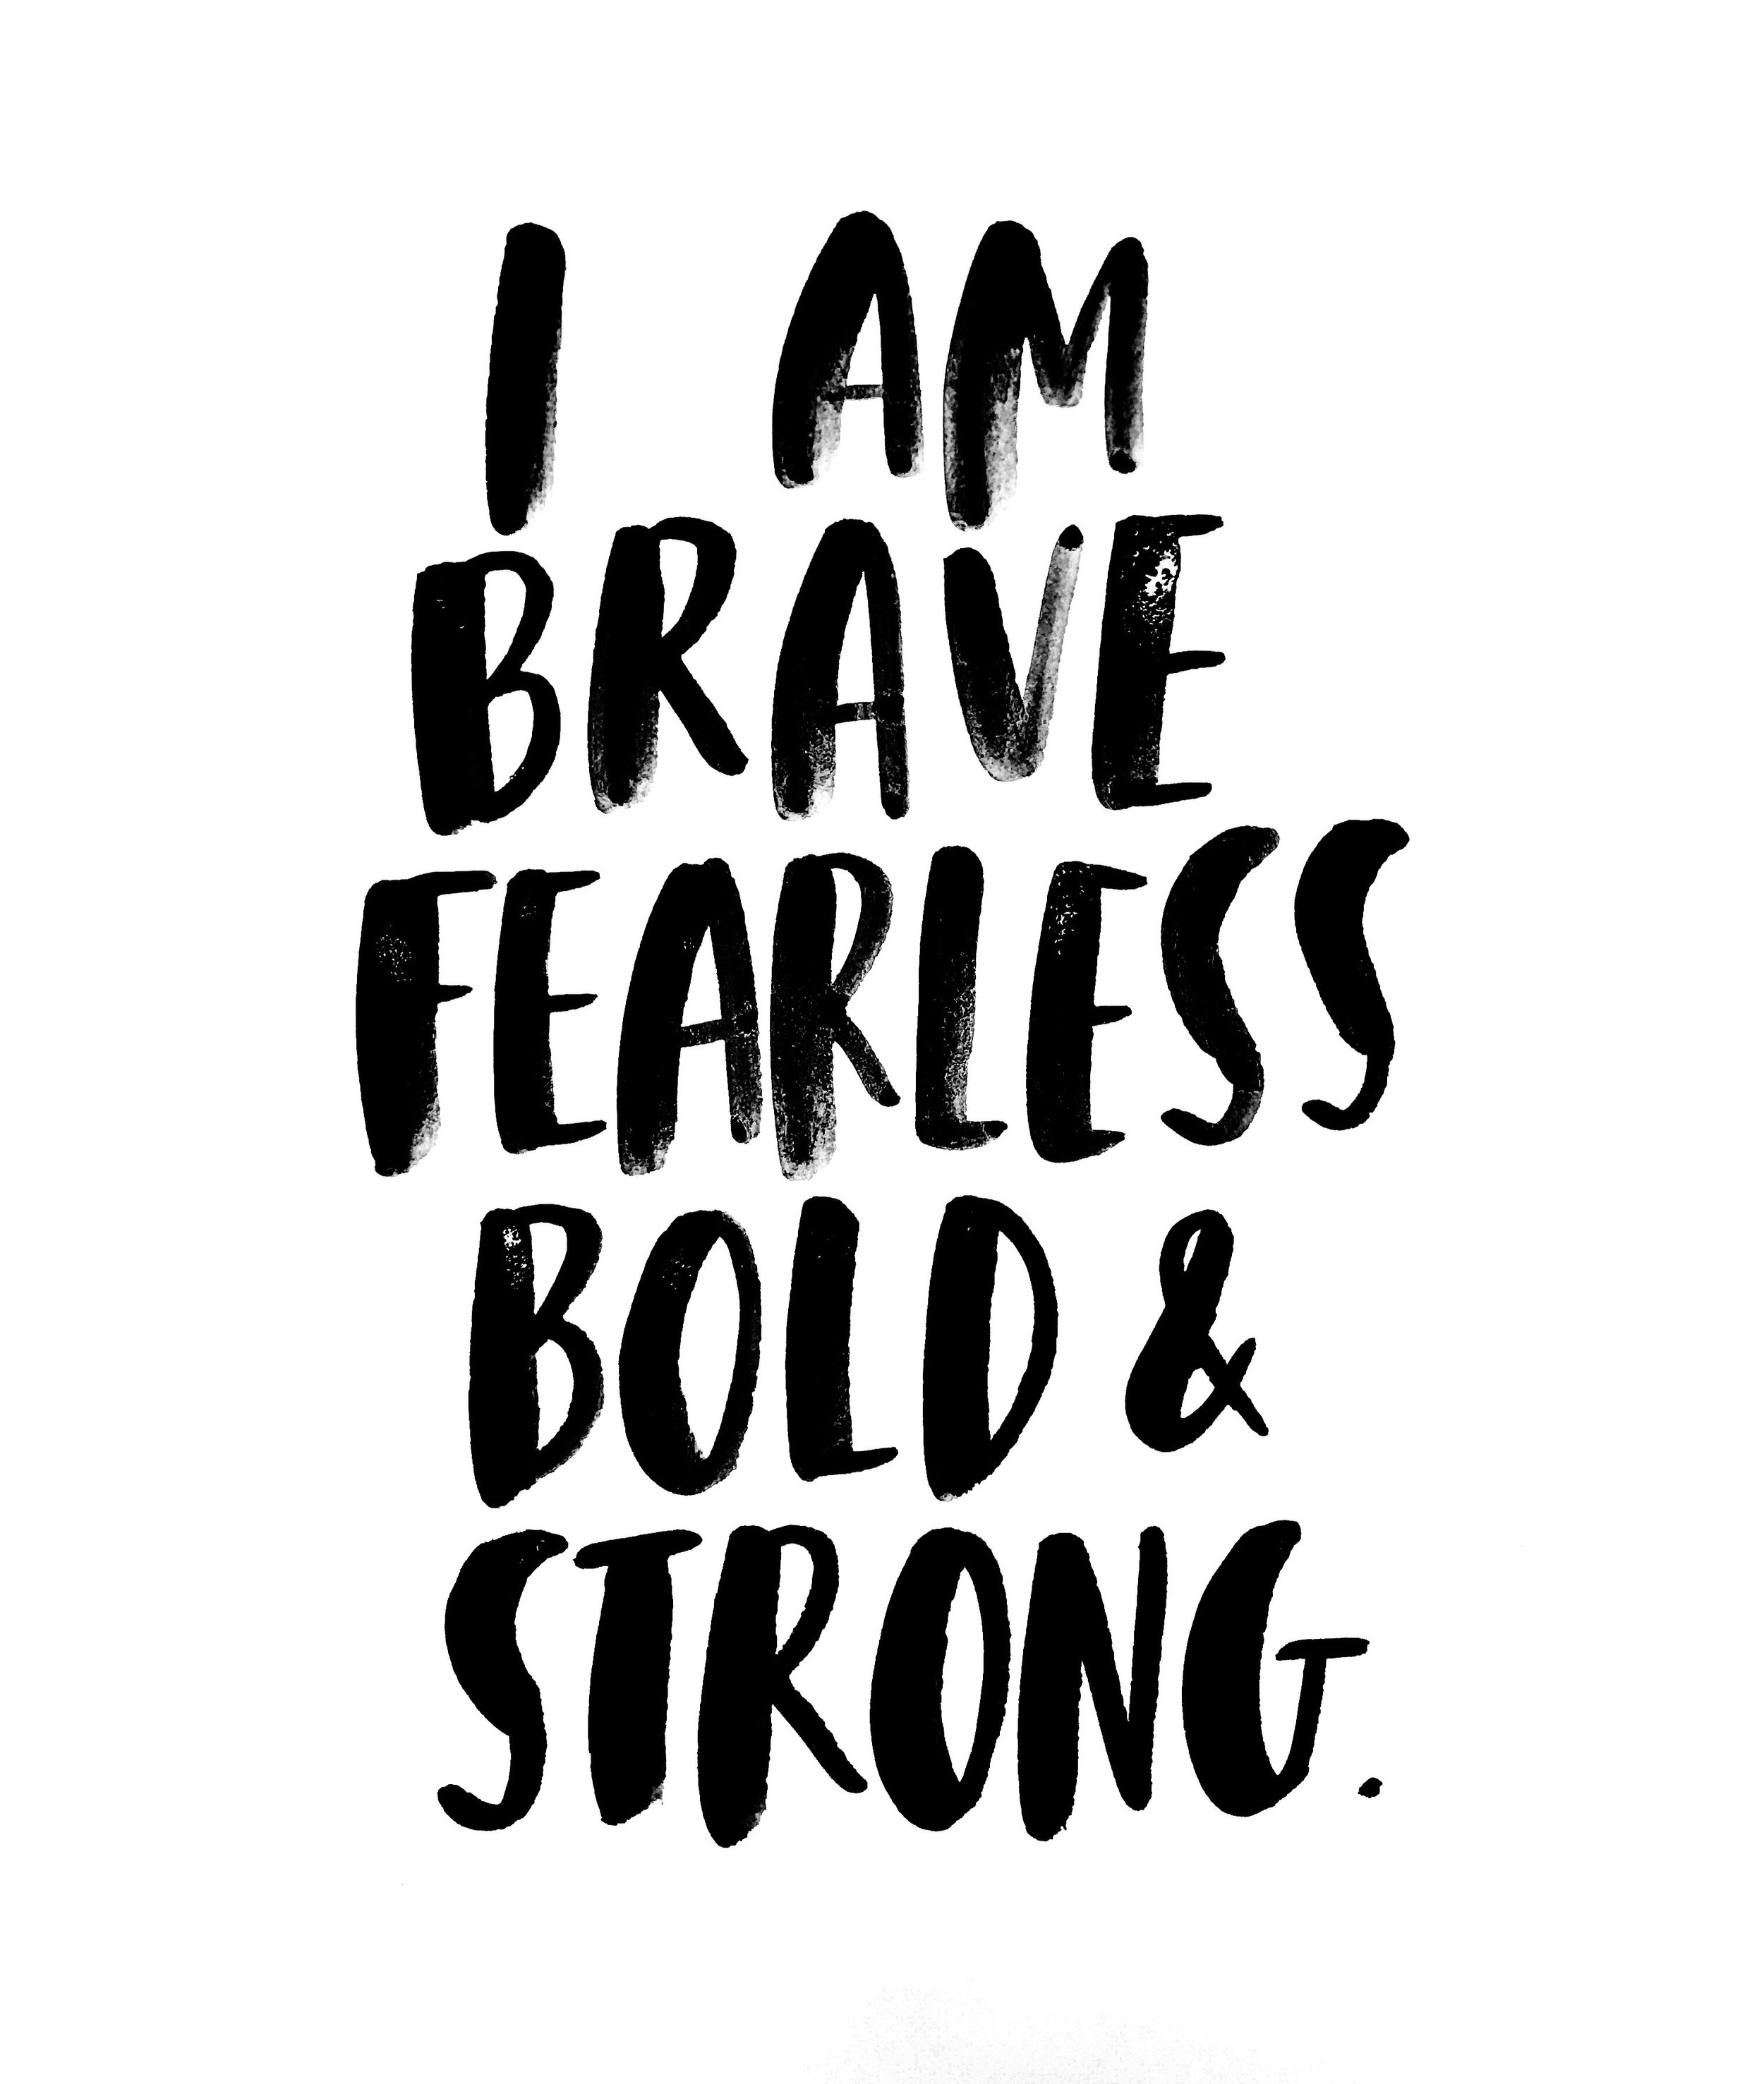 Brave, fearless, bold & strong